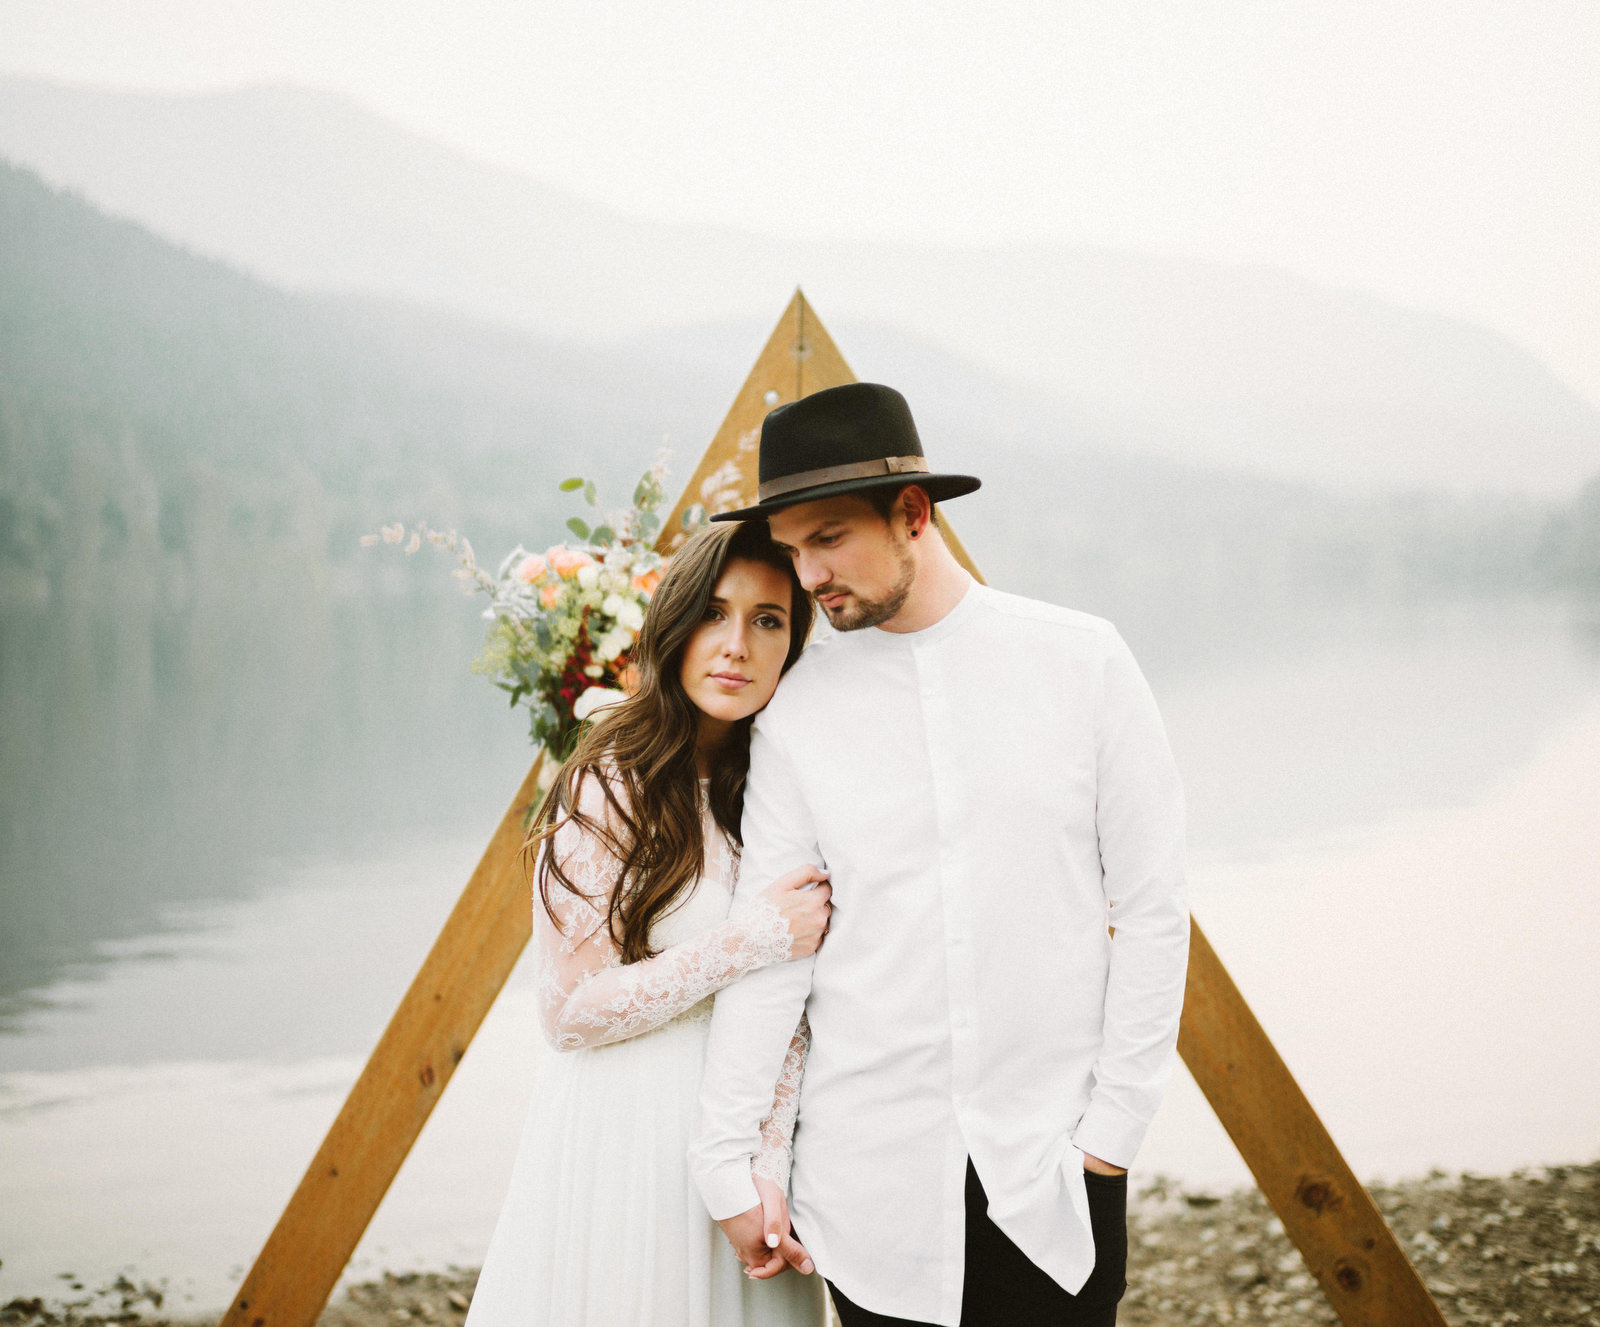 athena-and-camron-seattle-elopement-wedding-benj-haisch-rattlesnake-lake-christian-couple-goals69